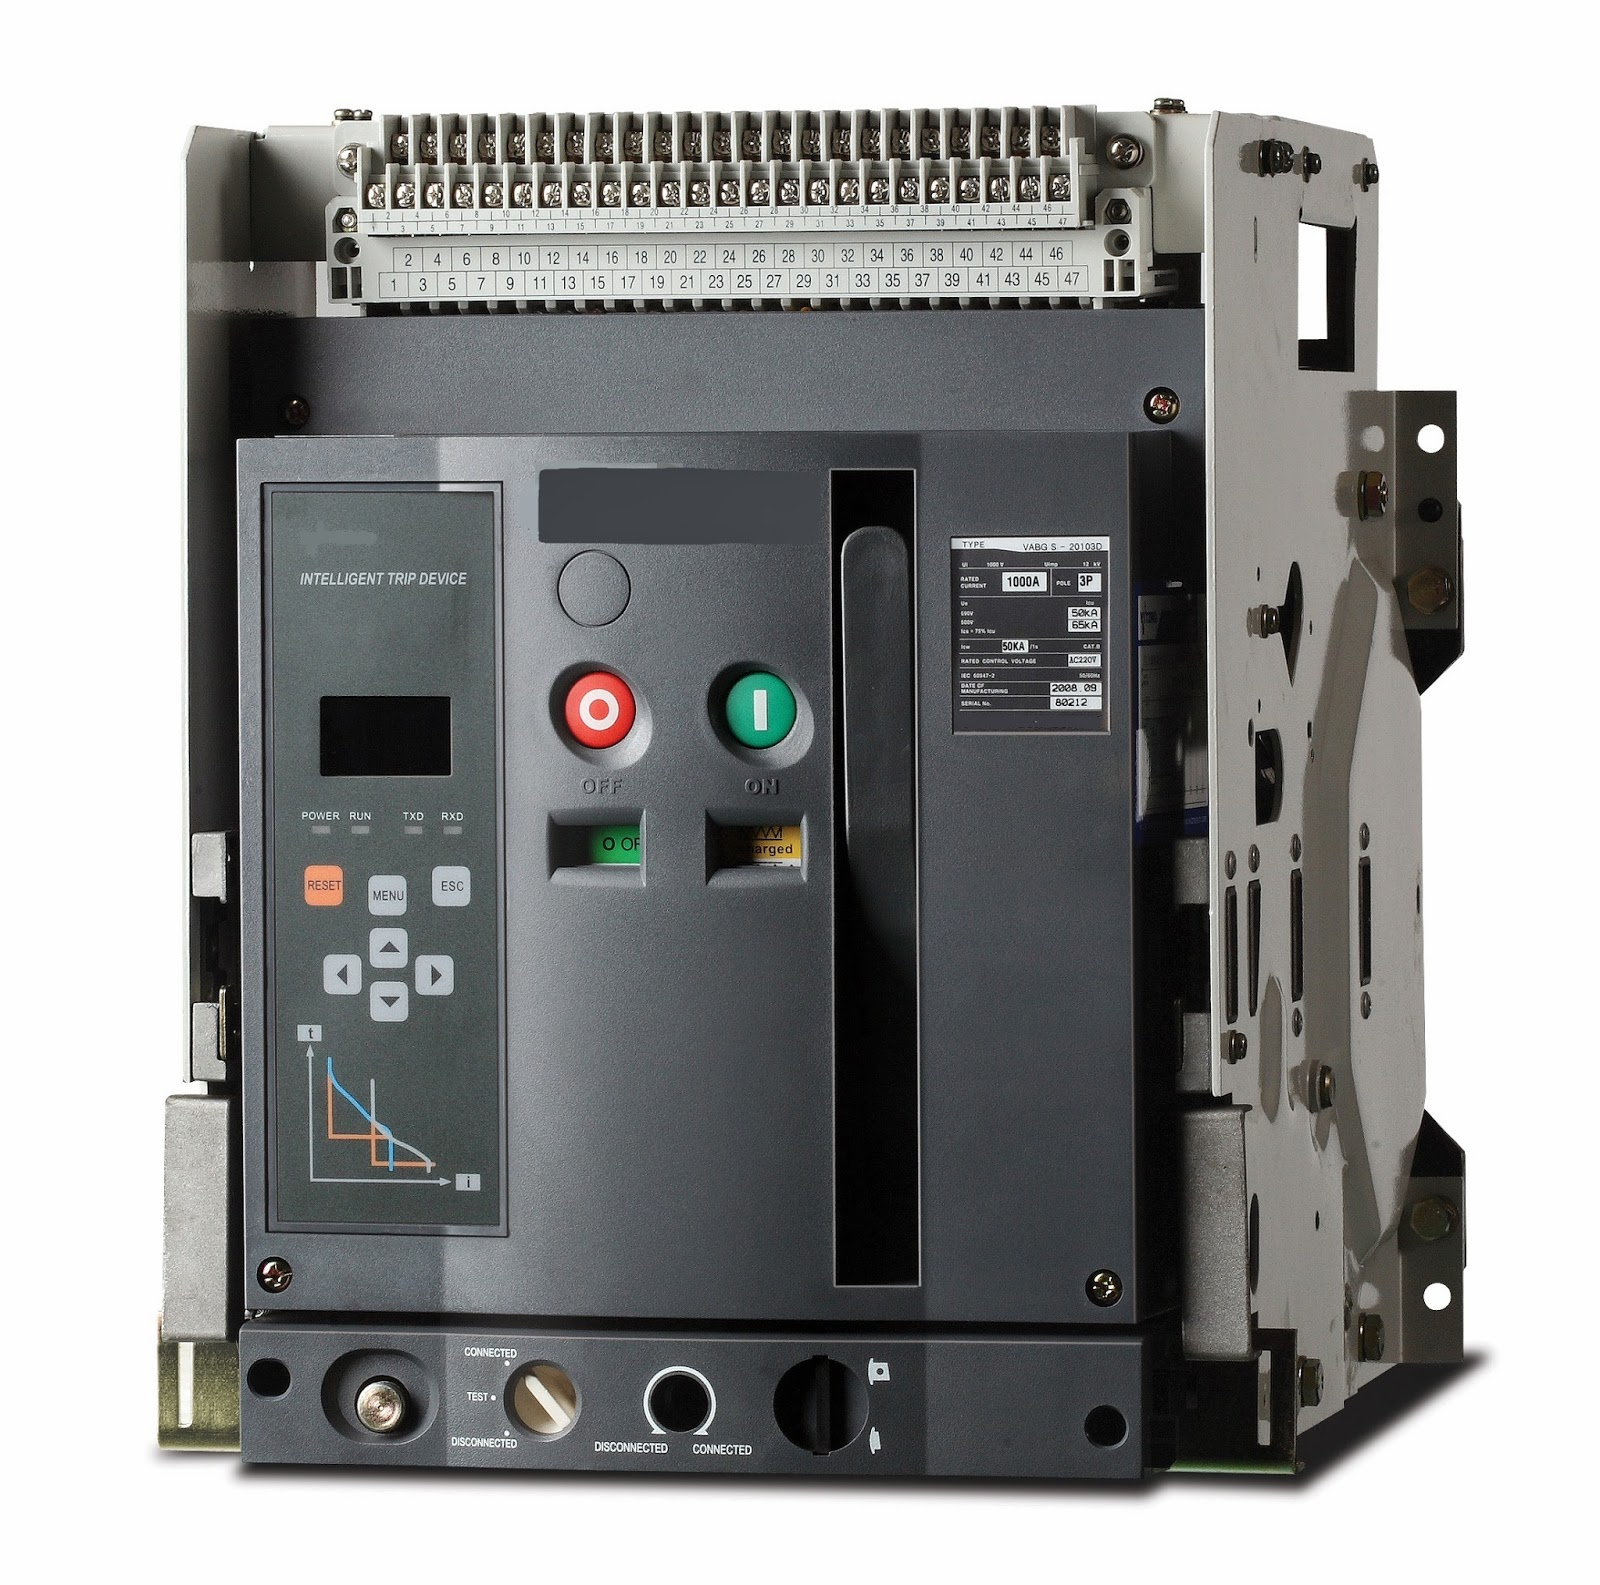 Siemens Sirius Safety Relay Wiring Diagram Wiring Diagrams additionally 2391055 besides Sprecher Control SPRECON E C Series together with Standard Blade Fuse Box Side Terminals 12 Way further 7sj64. on protective monitoring relays